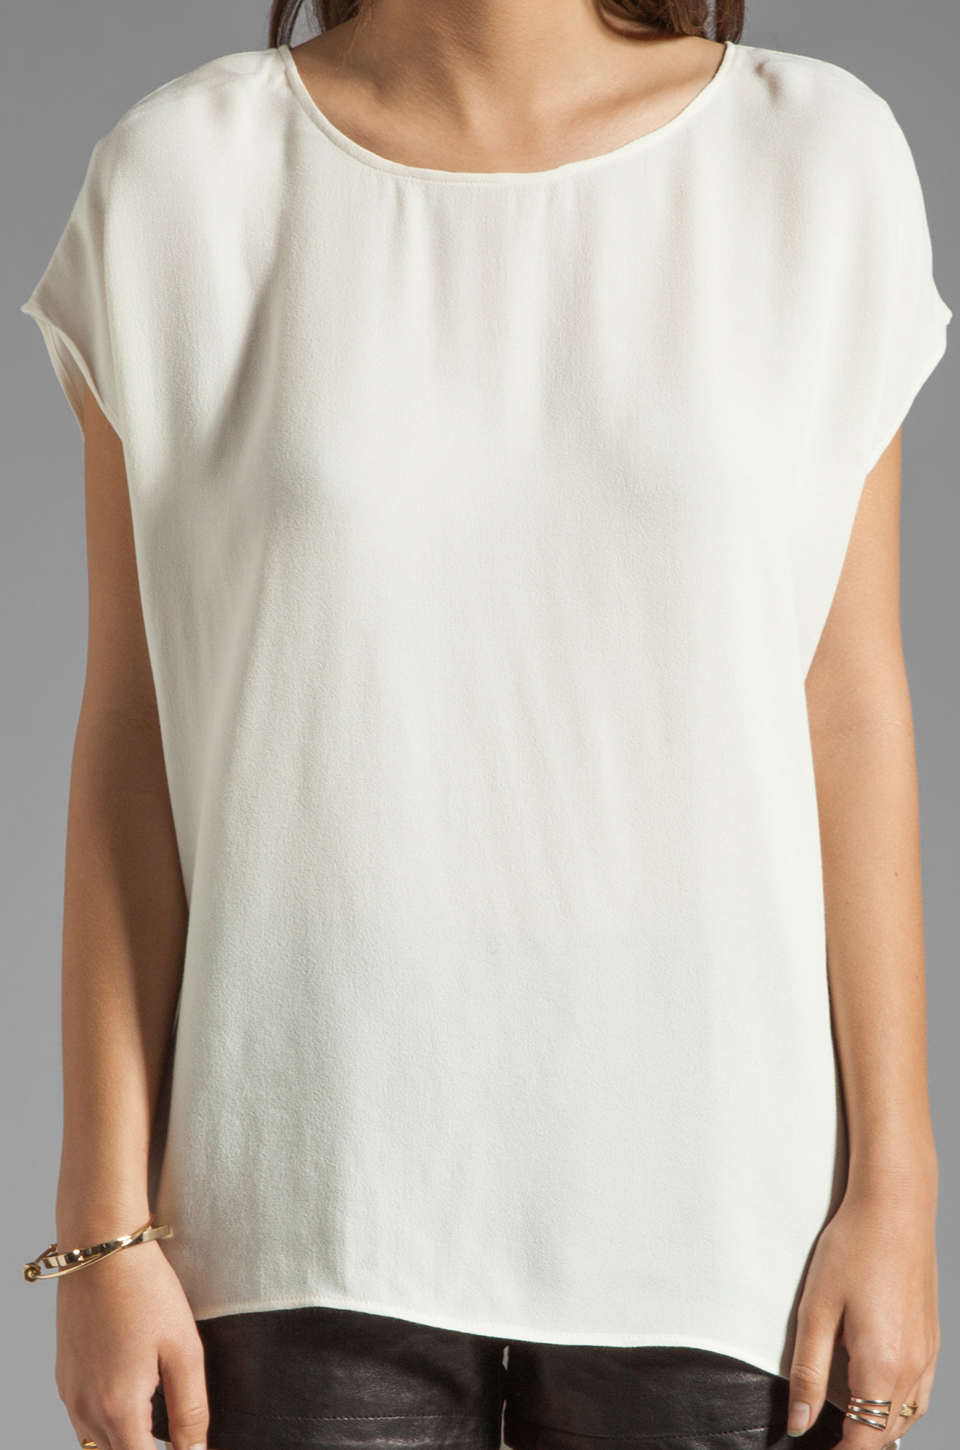 Backstage Short Sleeve Mandy Top in Ivory